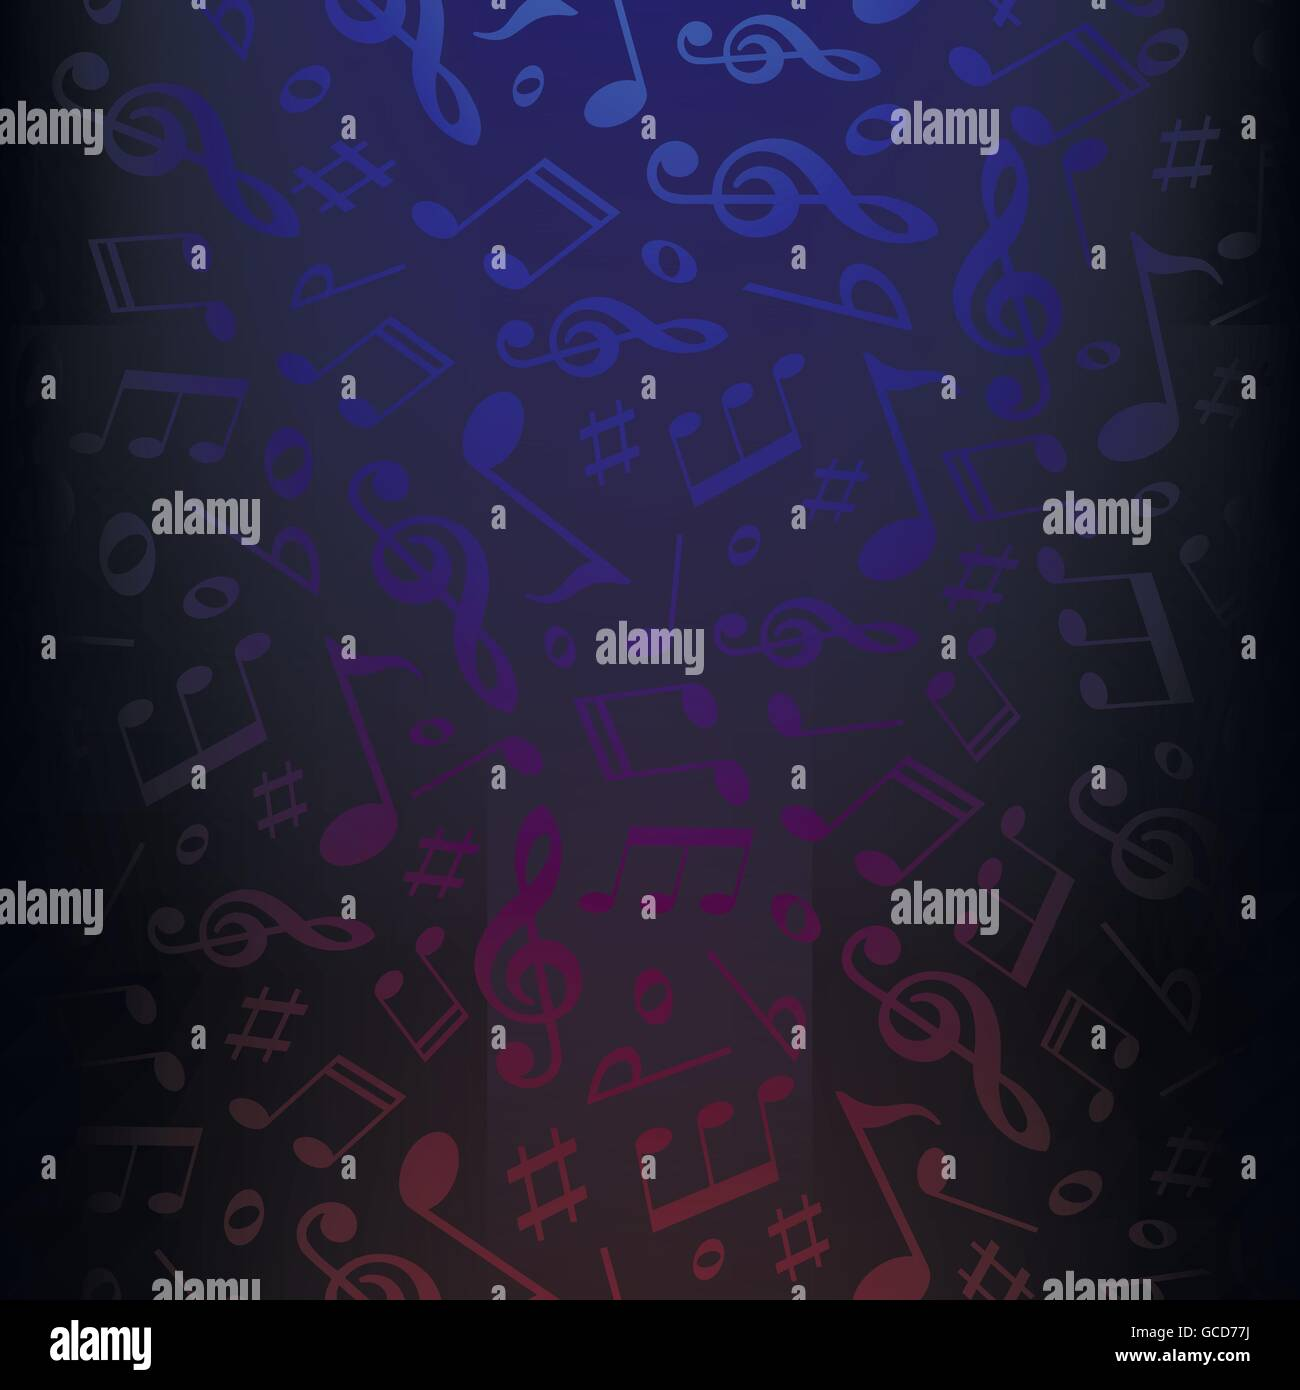 Cool Wallpaper Music Pattern - isolated-dark-color-musical-notes-vector-background-melody-vector-GCD77J  Collection_244178.jpg